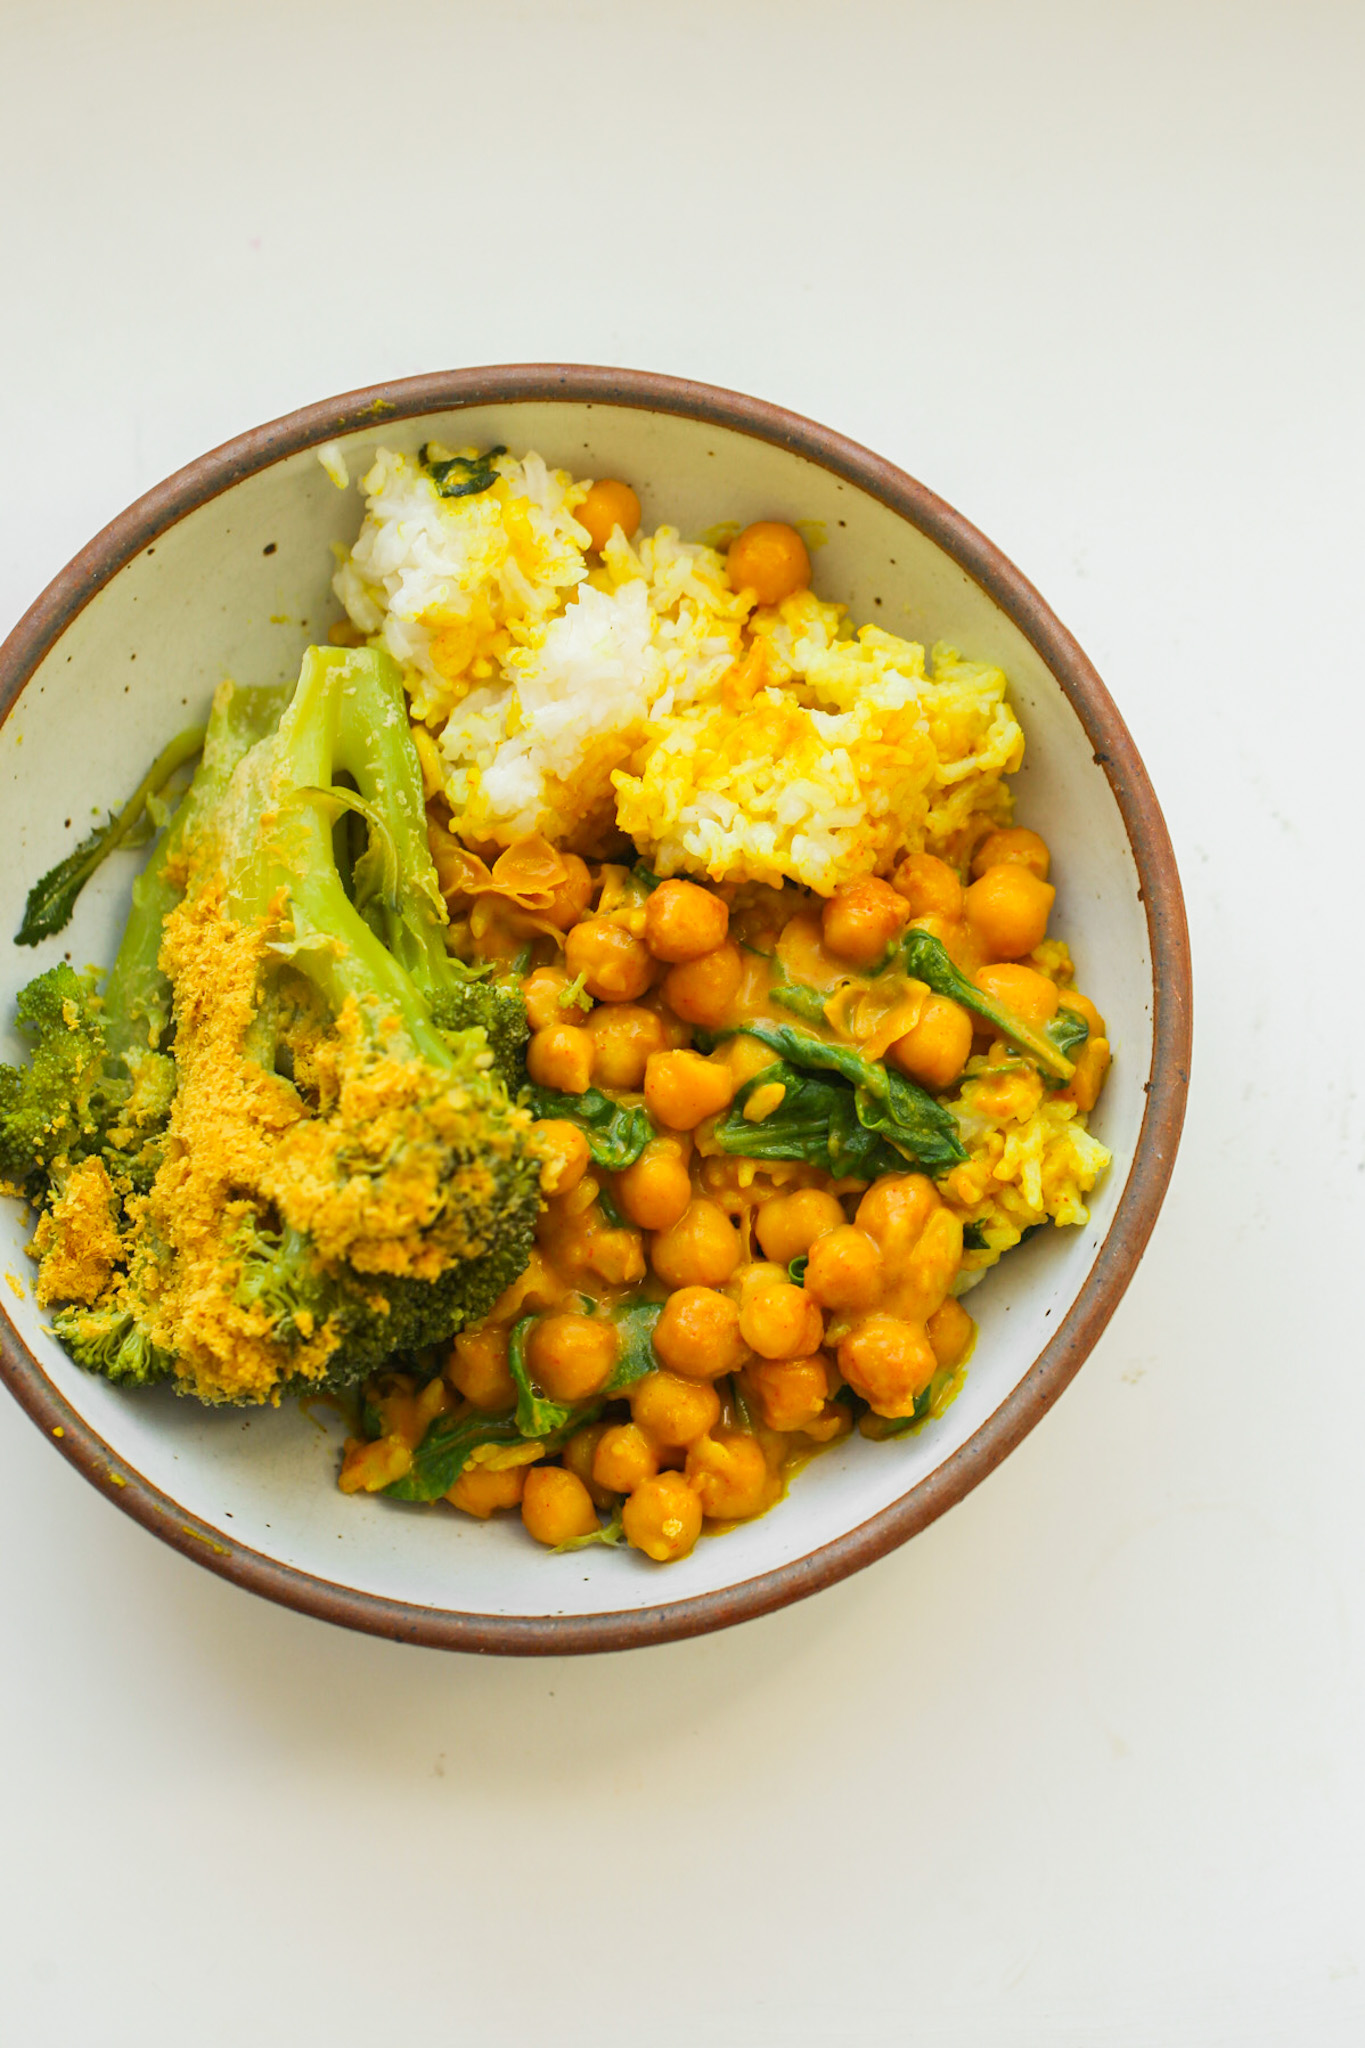 Veggie Rice Bowls with broccoli, chickpeas and peanut sauce